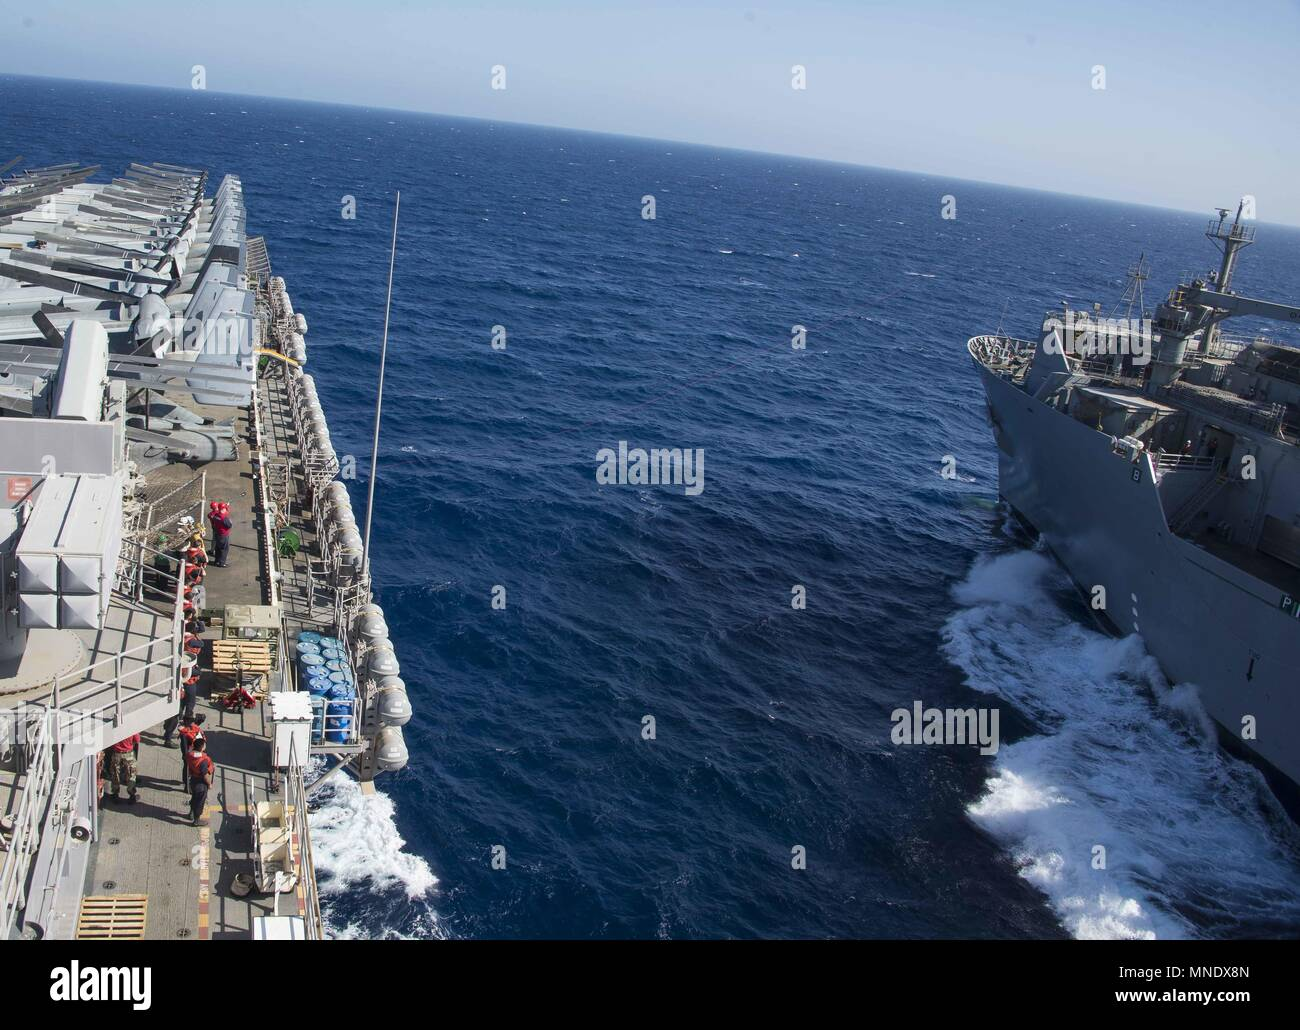 180515-N-AH771-0055 U.S. 5TH FLEET AREA OF OPERATIONS (May 15, 2018) The dry cargo and ammunition ship USNS Amelia Earhart (T-AKE 6) receives the phone and distance line from the Wasp-class amphibious assault ship USS Iwo Jima (LHD 7) during a replenishment-at-sea, May 15, 2018, May 15, 2018. Iwo Jima, homeported in Mayport, Fla. is on deployment to the U.S. 5th Fleet area of operations in support of maritime security operations to reassure allies and partners, and preserve the freedom of navigation and the free flow of commerce in the region. (U.S. Navy photo by Mass Communication Specialist  Stock Photo